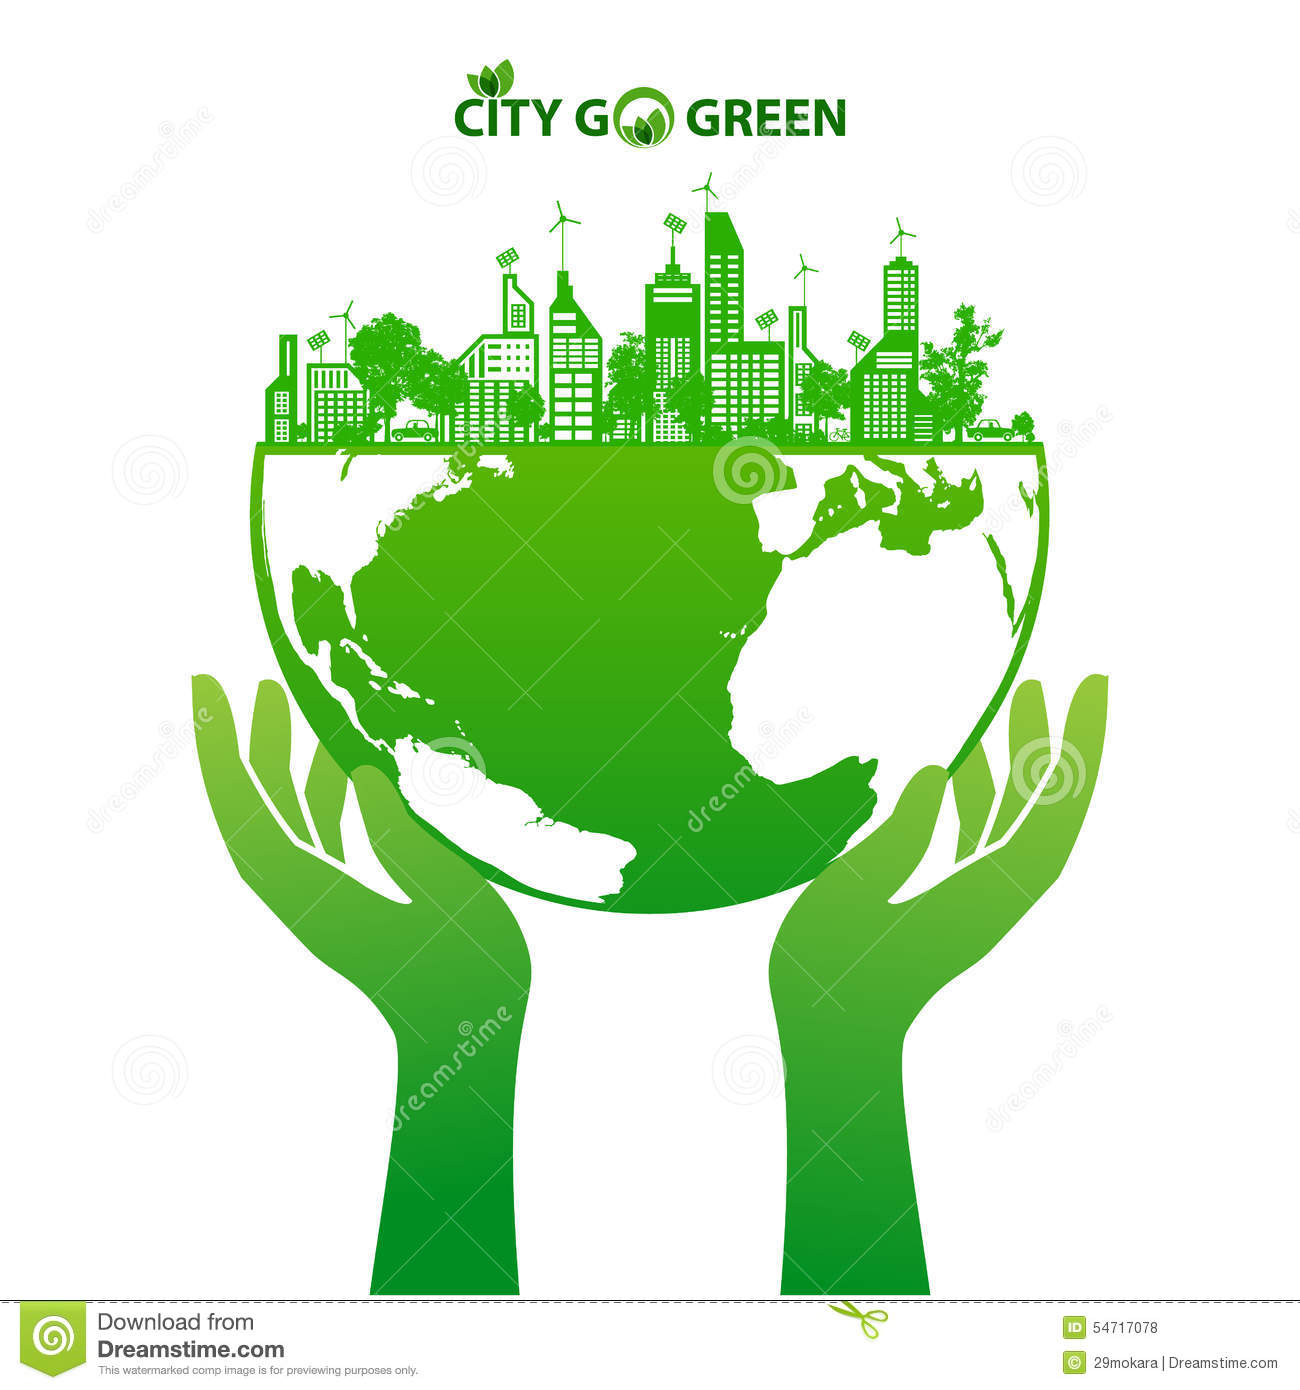 Ecoconcept green earth and city eco concept stock vector - illustration of